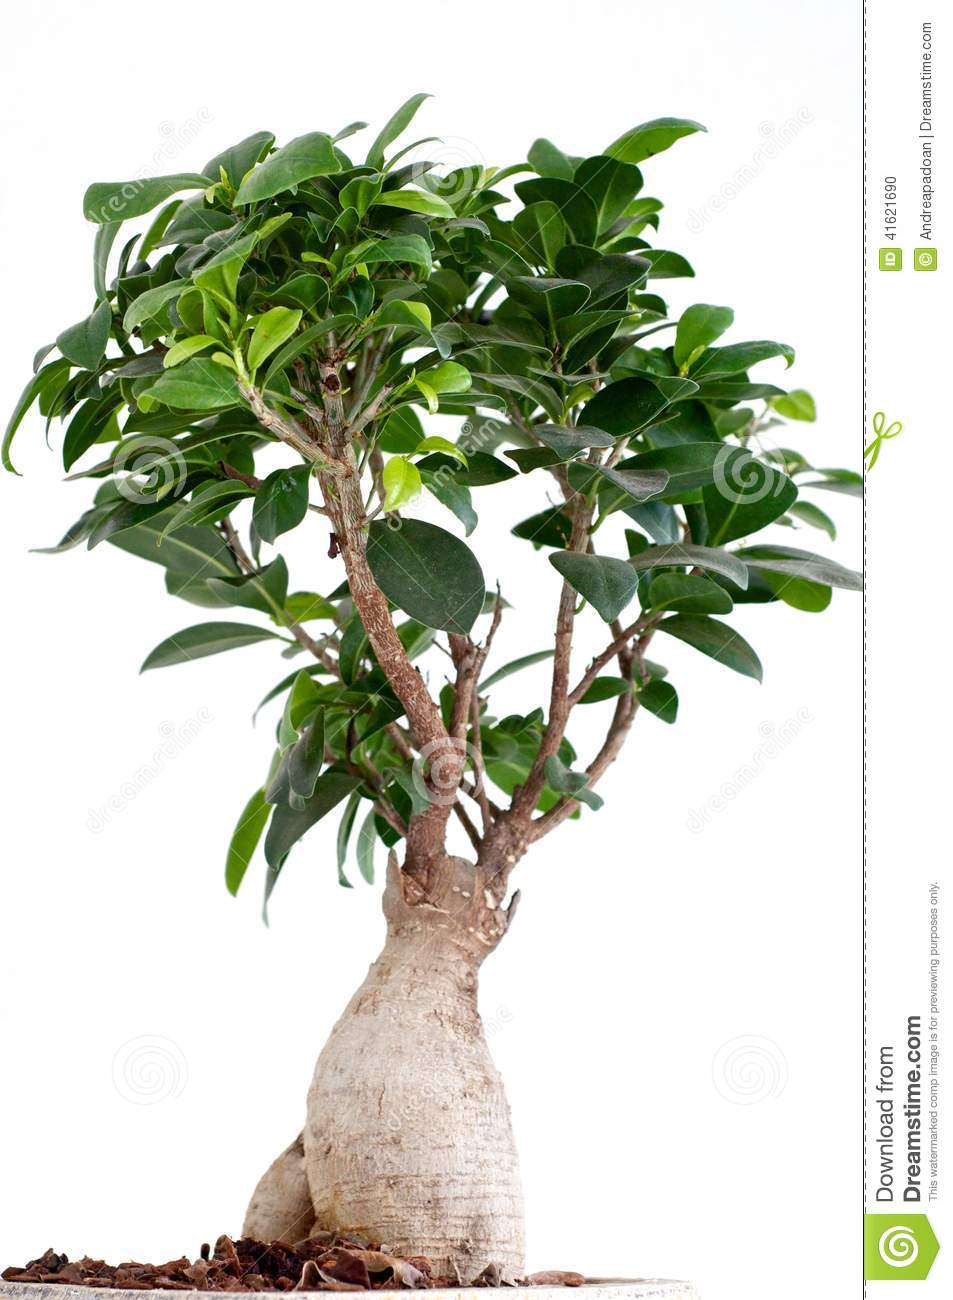 ficus ginseng bonsai stock photo image of giardino captured 41621690. Black Bedroom Furniture Sets. Home Design Ideas